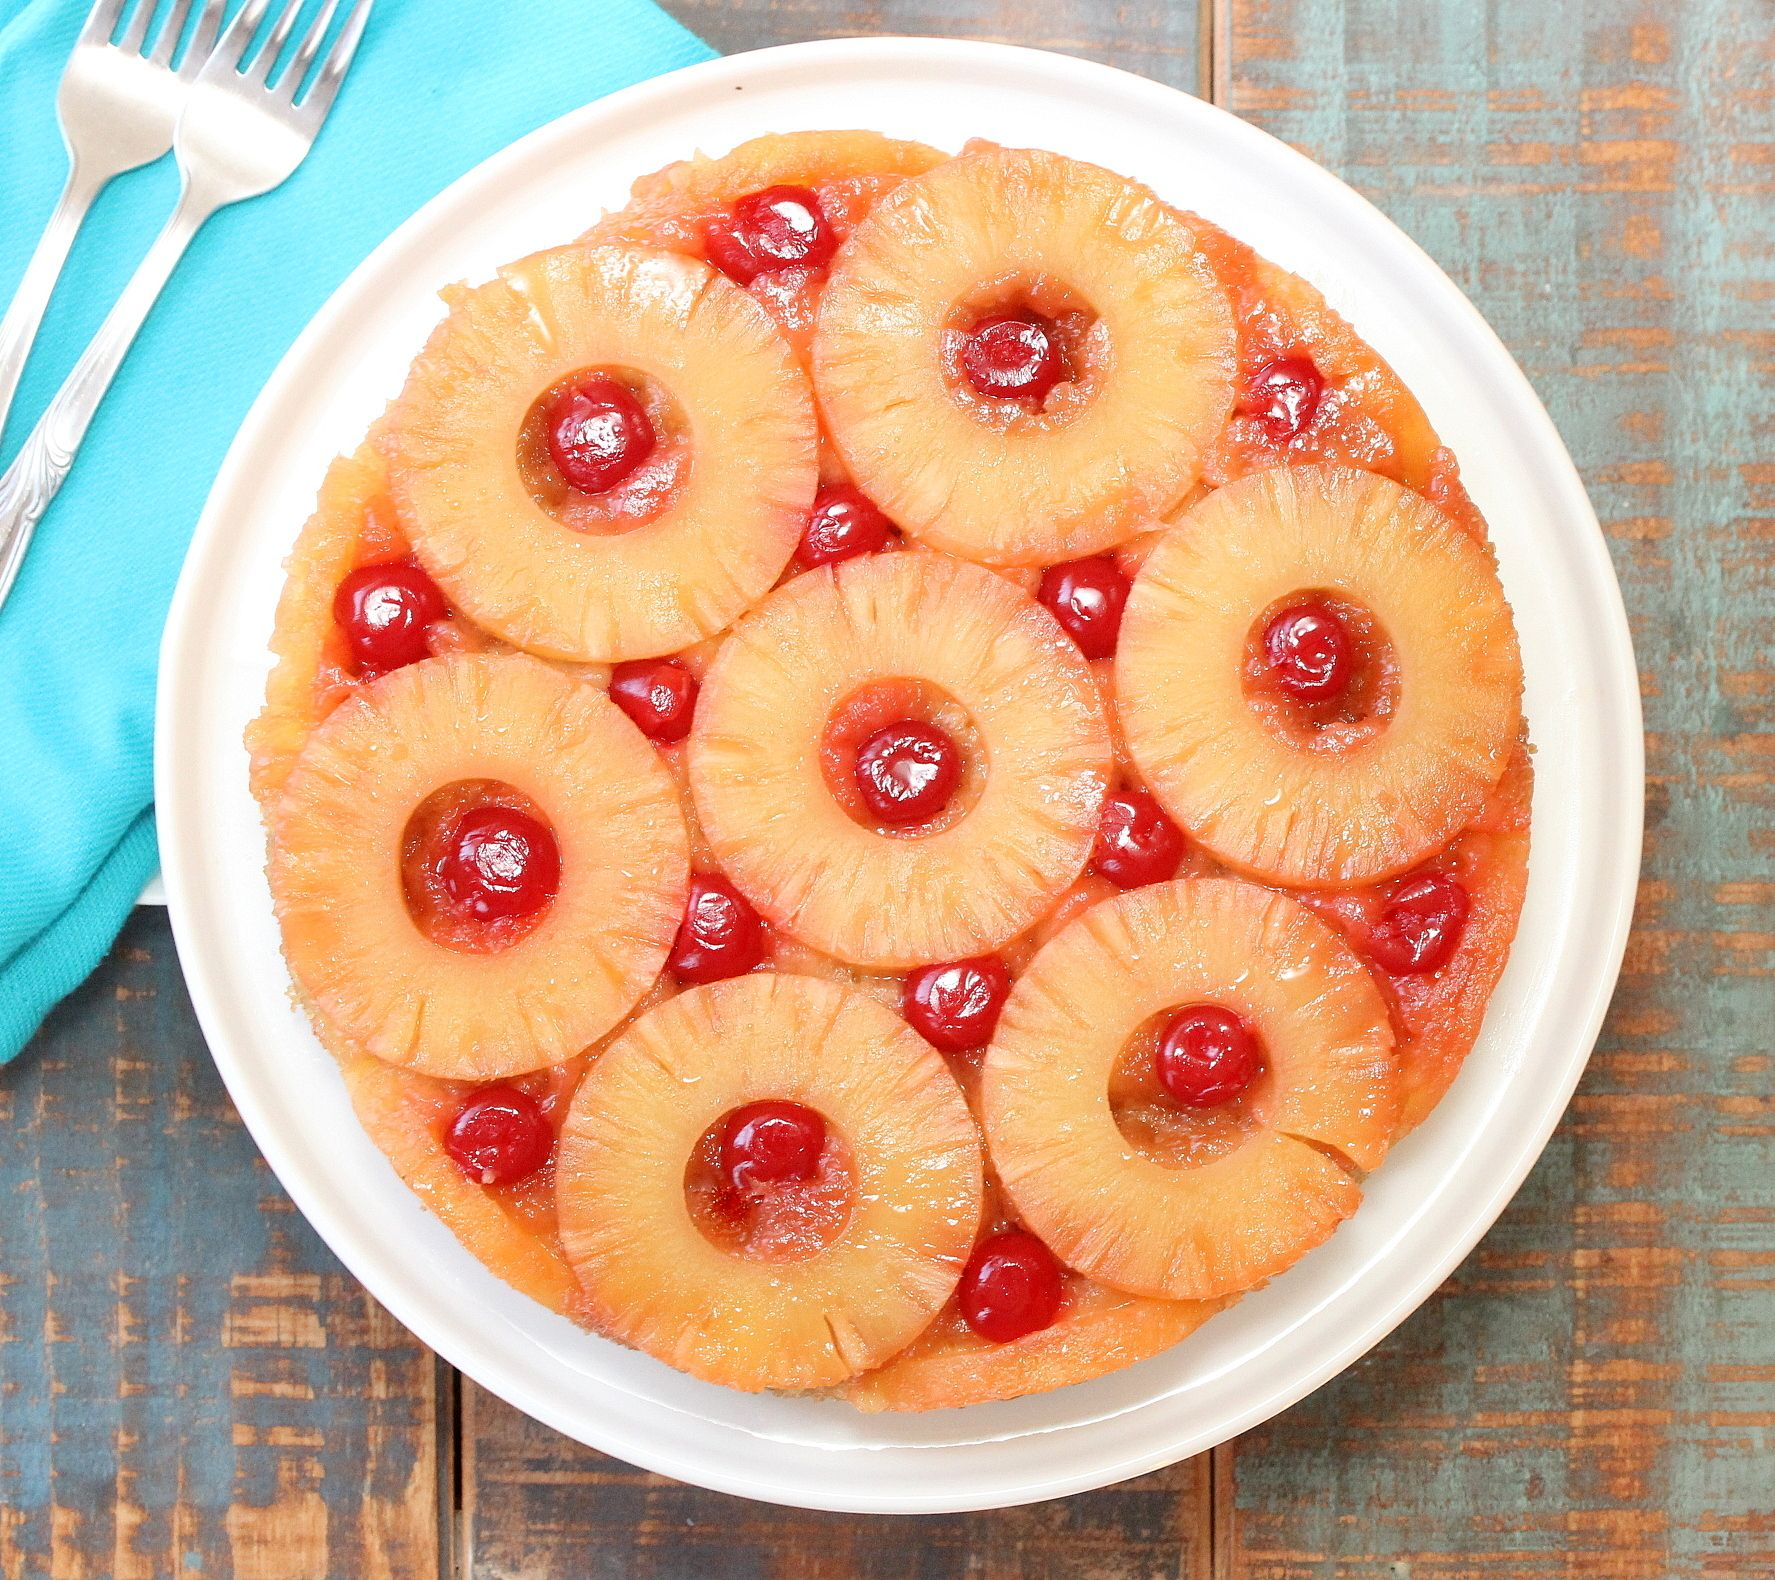 Pineapple Cake Batter From Scratch: Classic Pineapple Upside-Down Cake